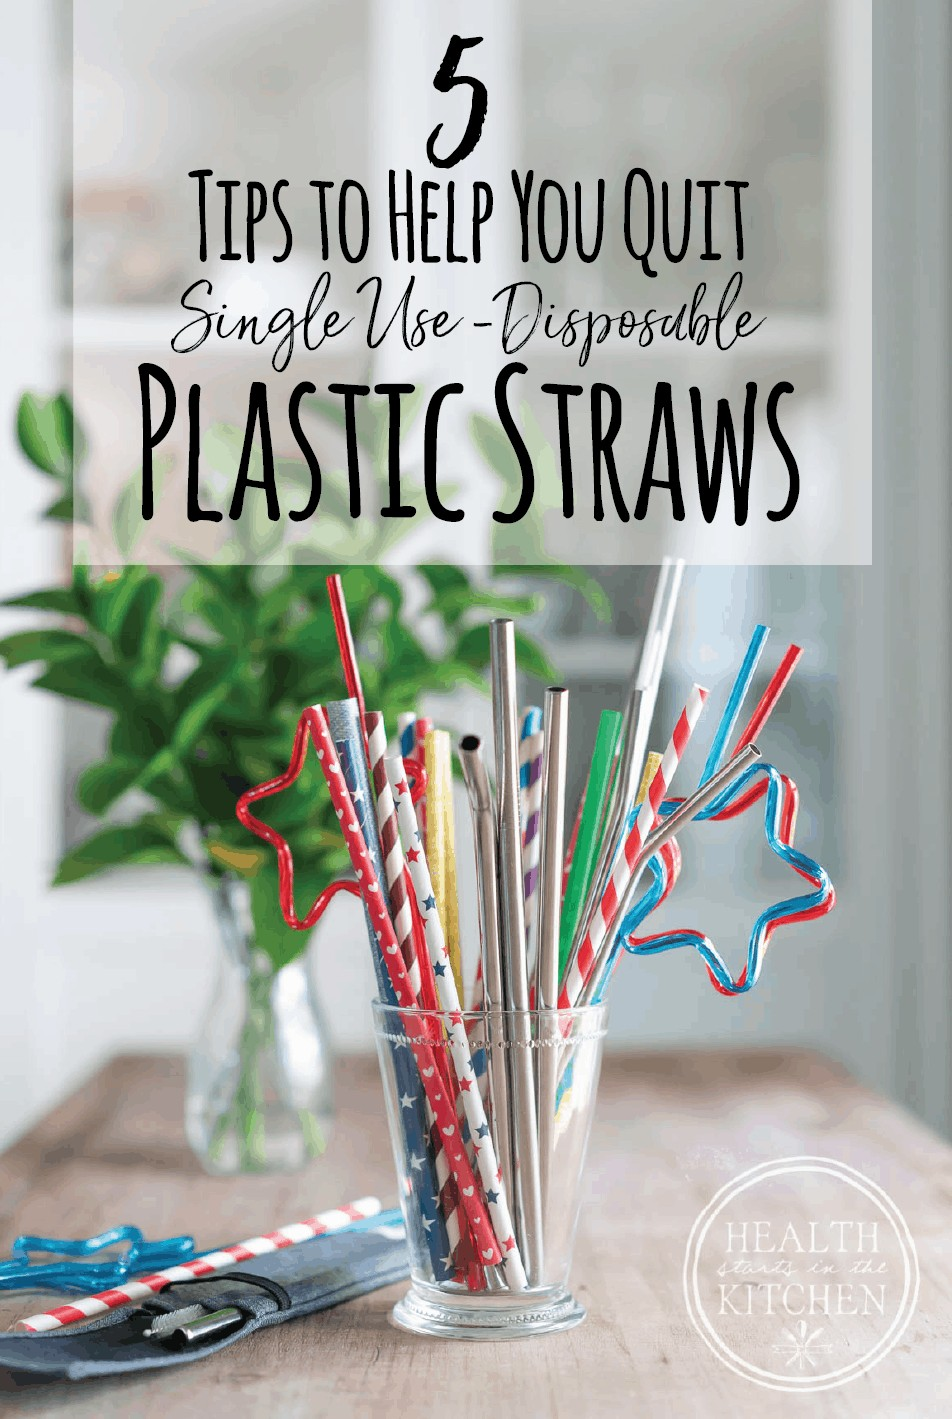 5 Tips to Help You Ditch Plastic Disposable Straws